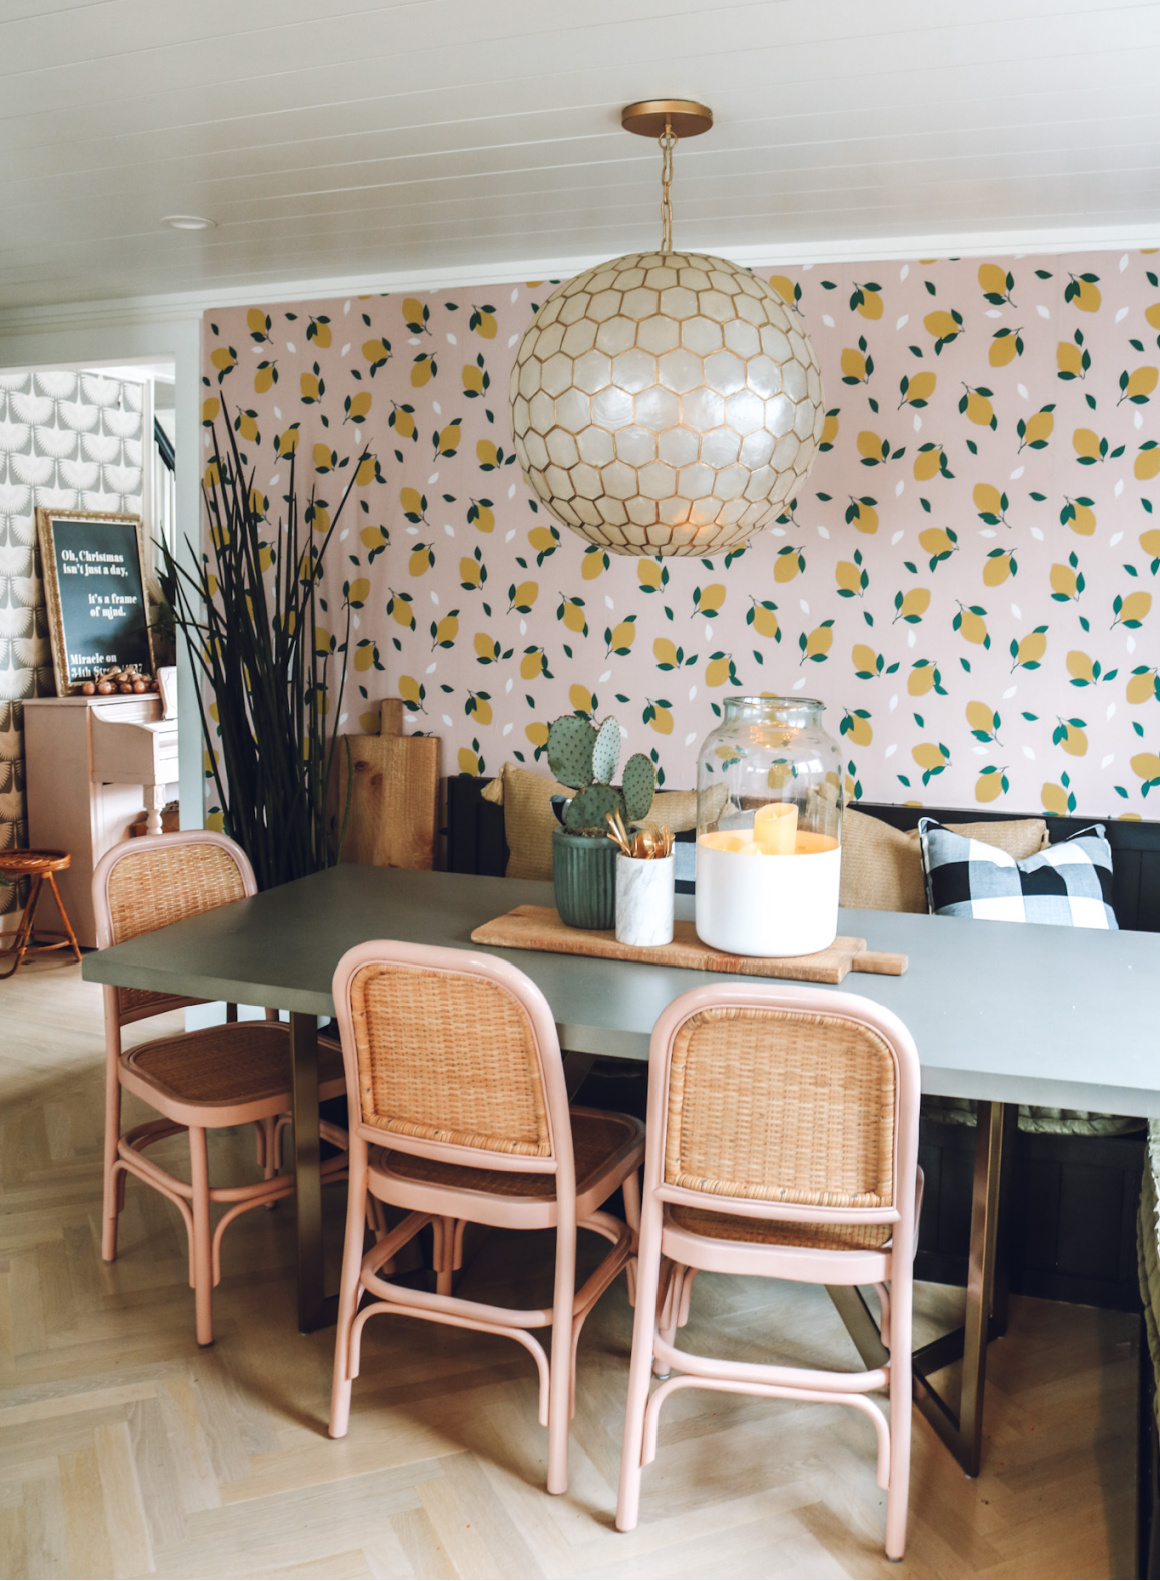 Removable Wallpaper Peel and stick Wallpaper Lemon Wallpaper affordable wallpaper